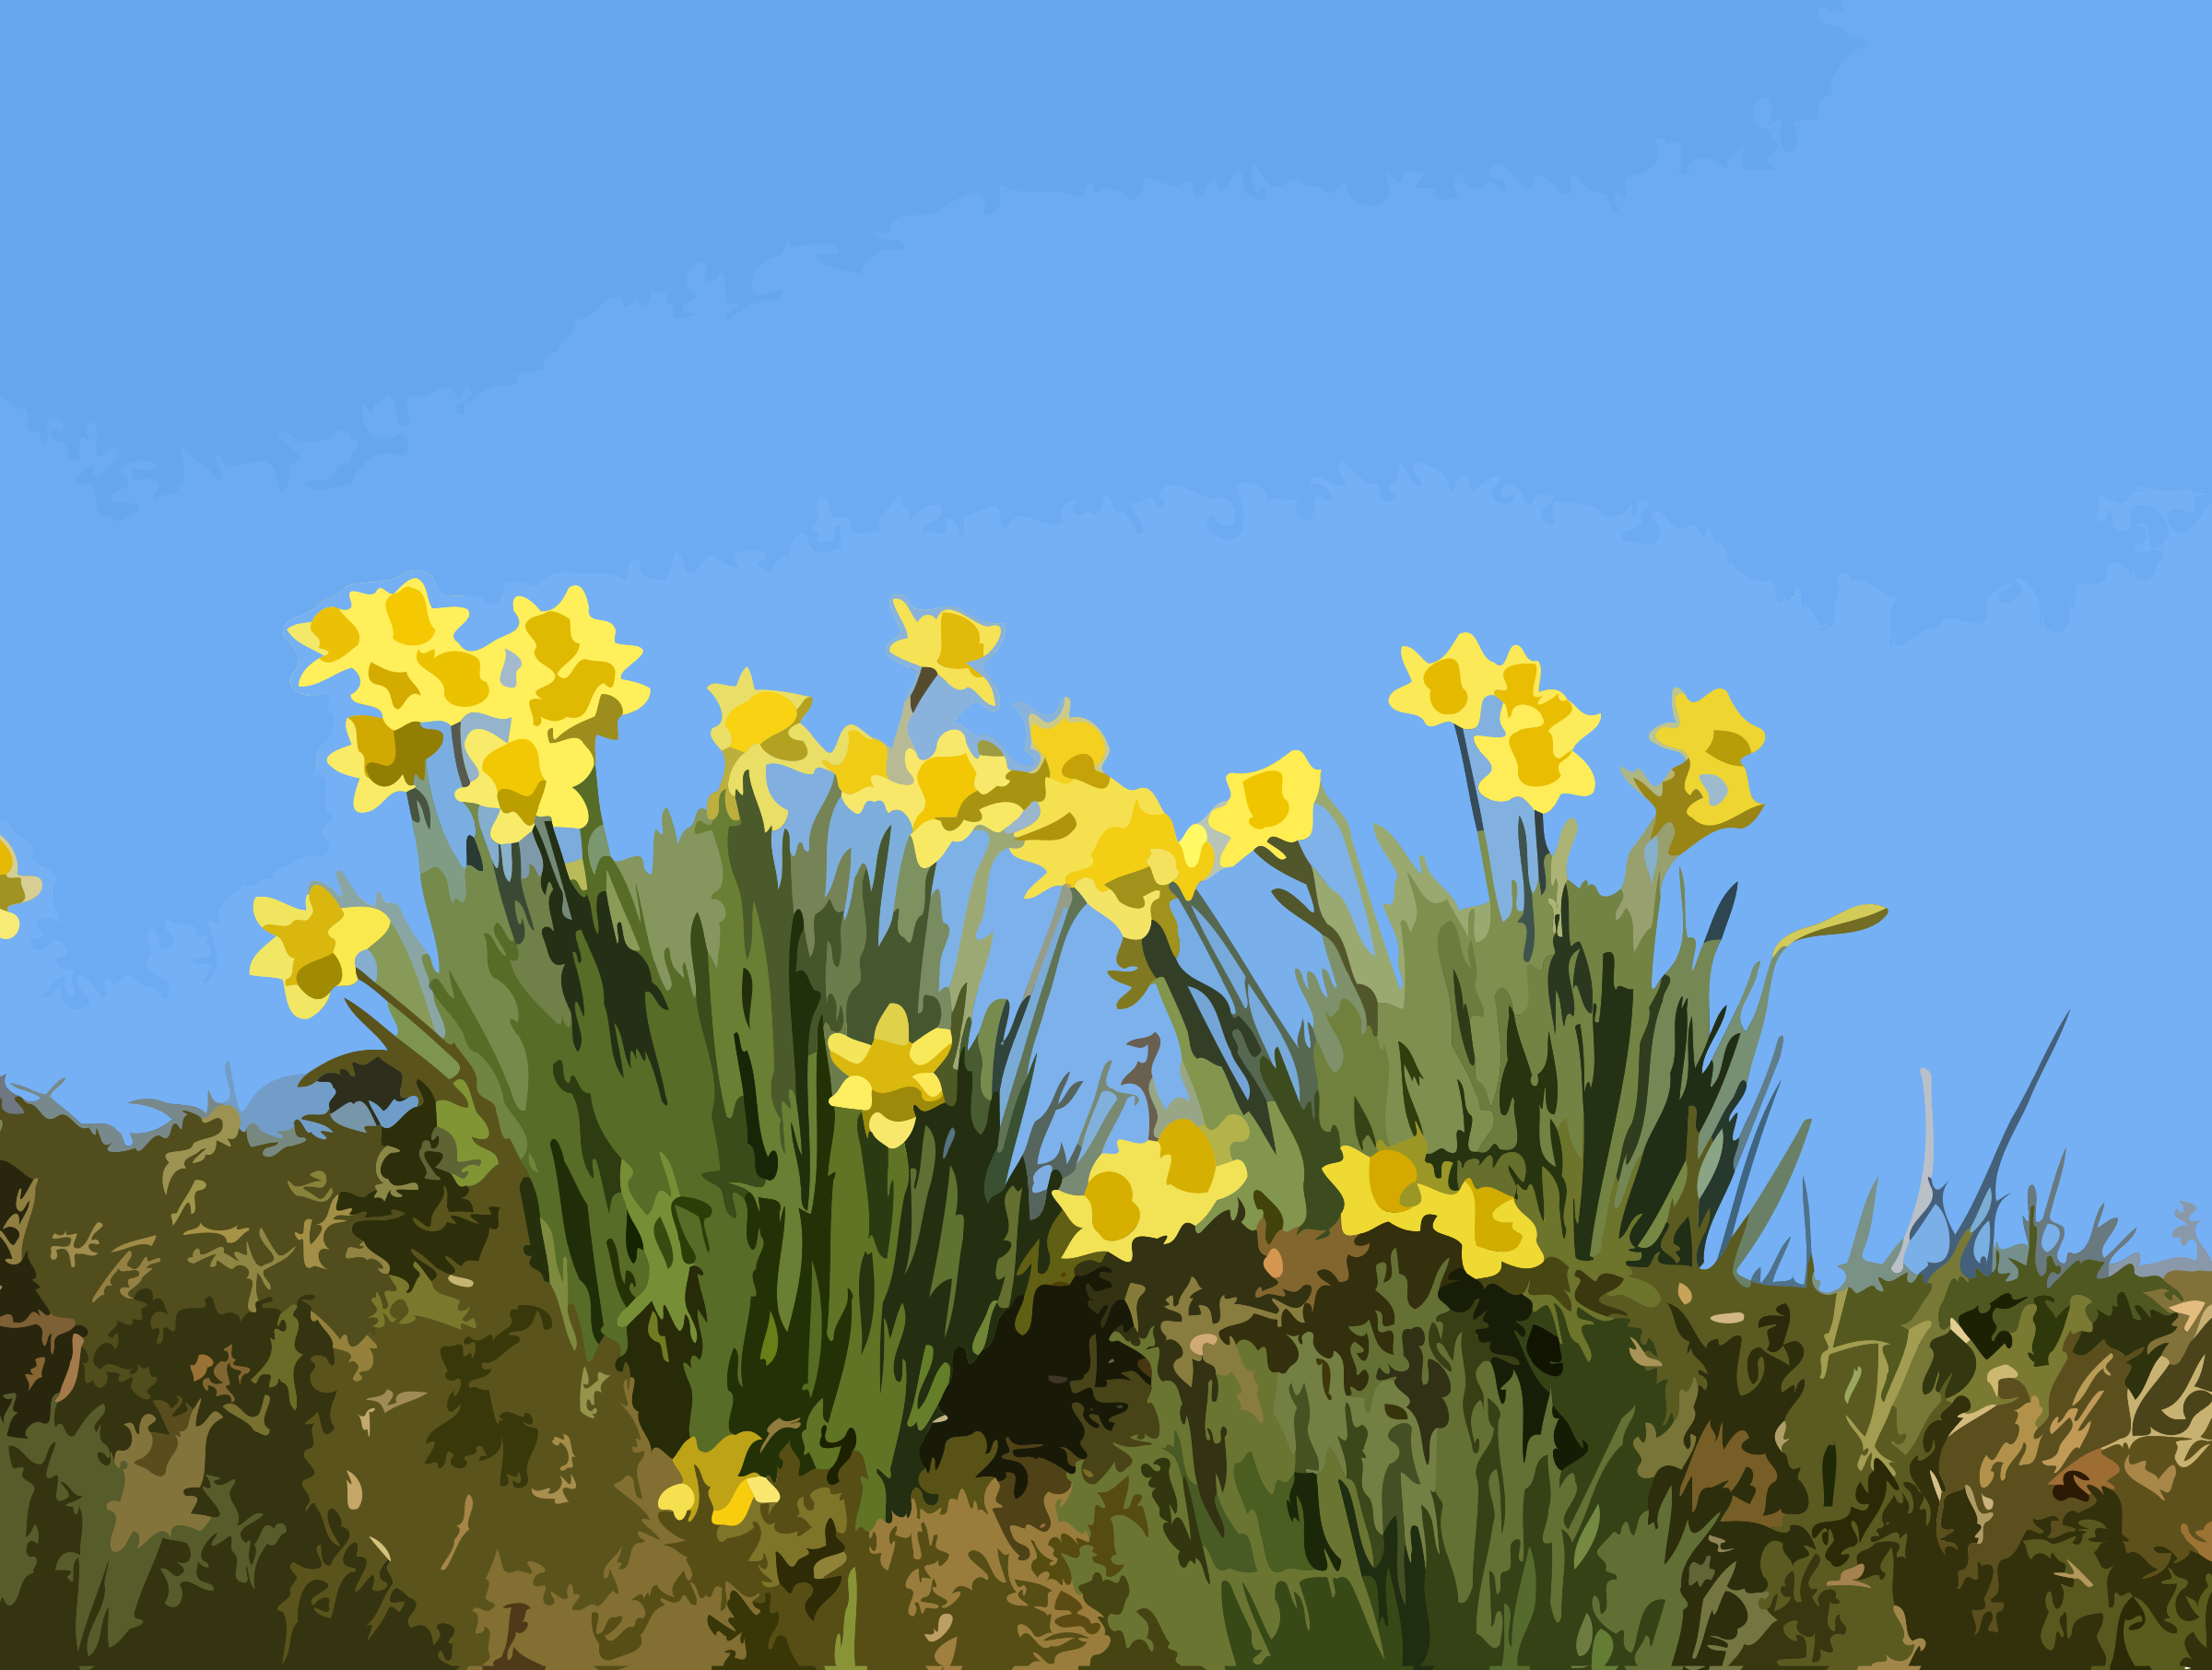 Yellow Daffodil Flowers vector clipart image - Free stock ...